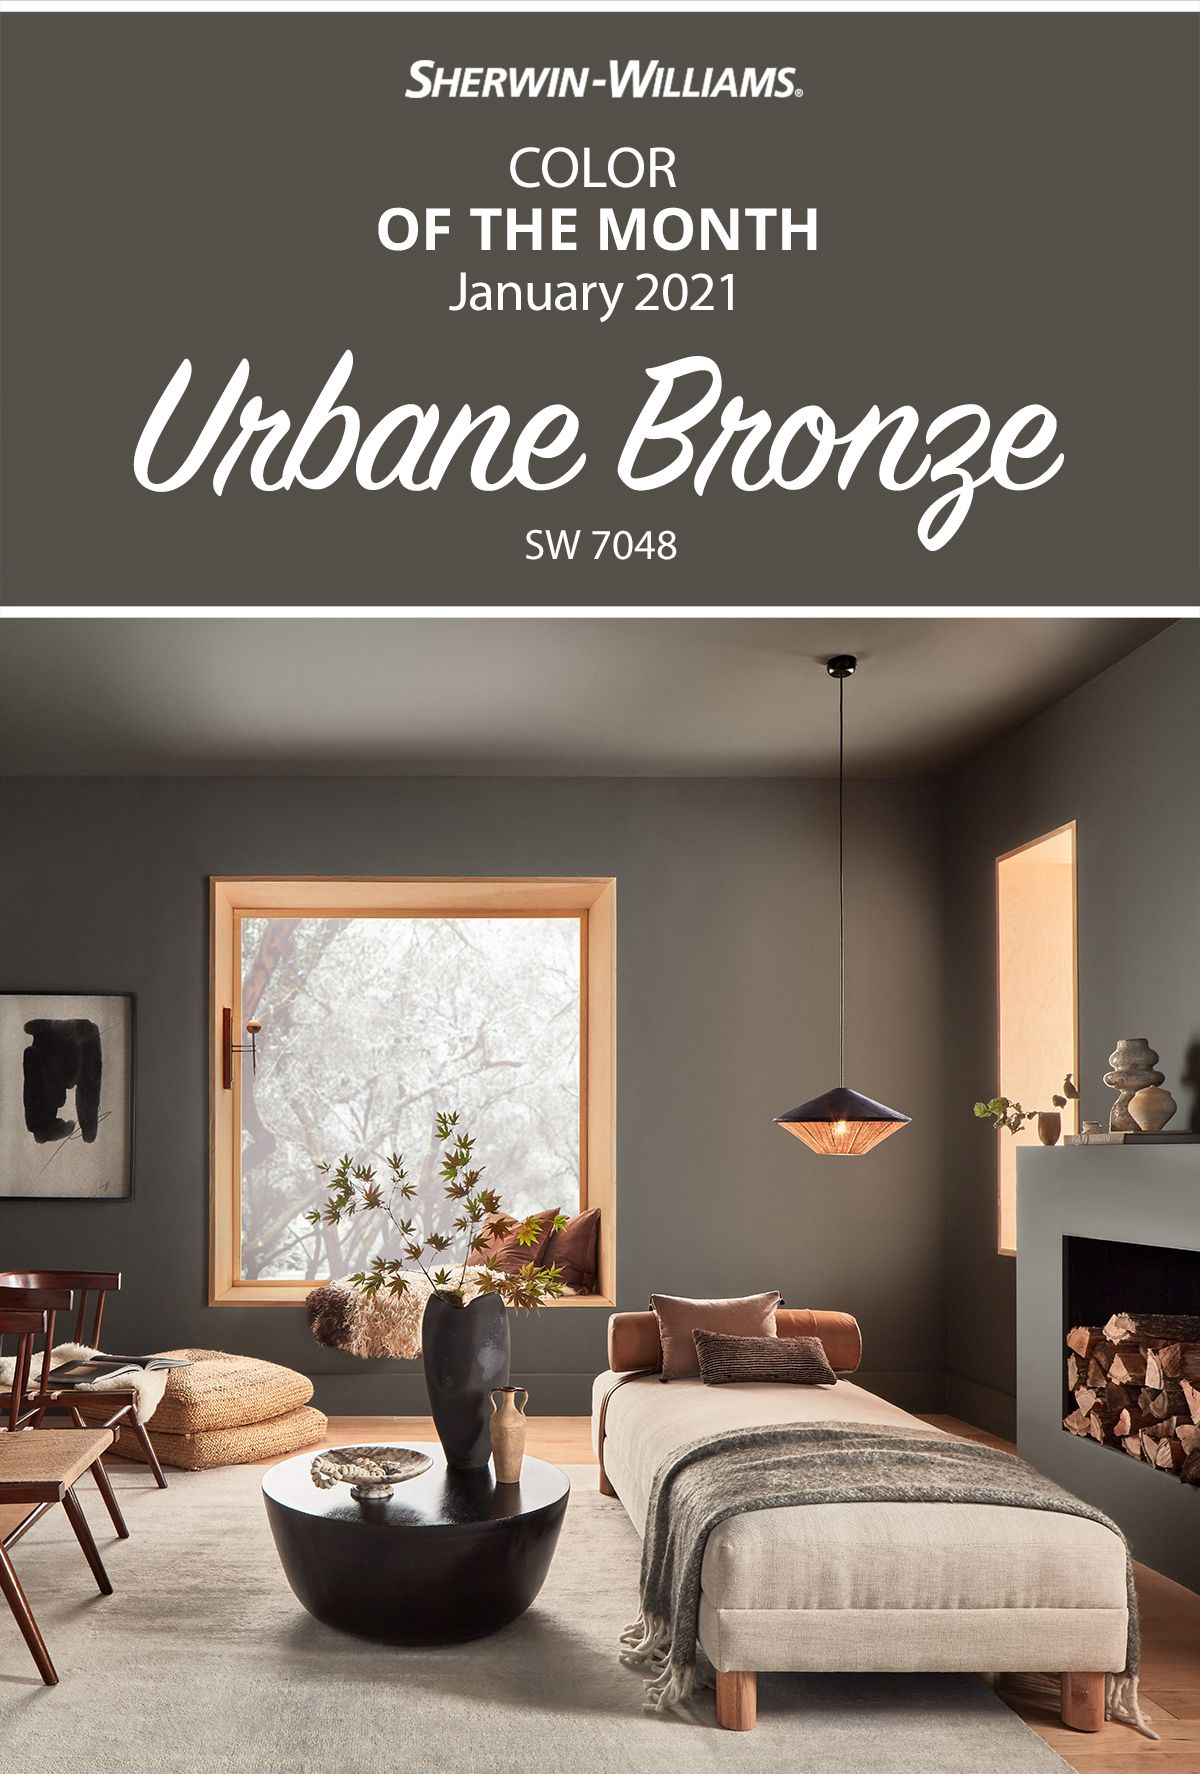 Warm Dark Neutral Paint Color Inspiration In 2021 Paint Colors For Living Room Best Bedroom Paint Colors Bedroom Wall Colors